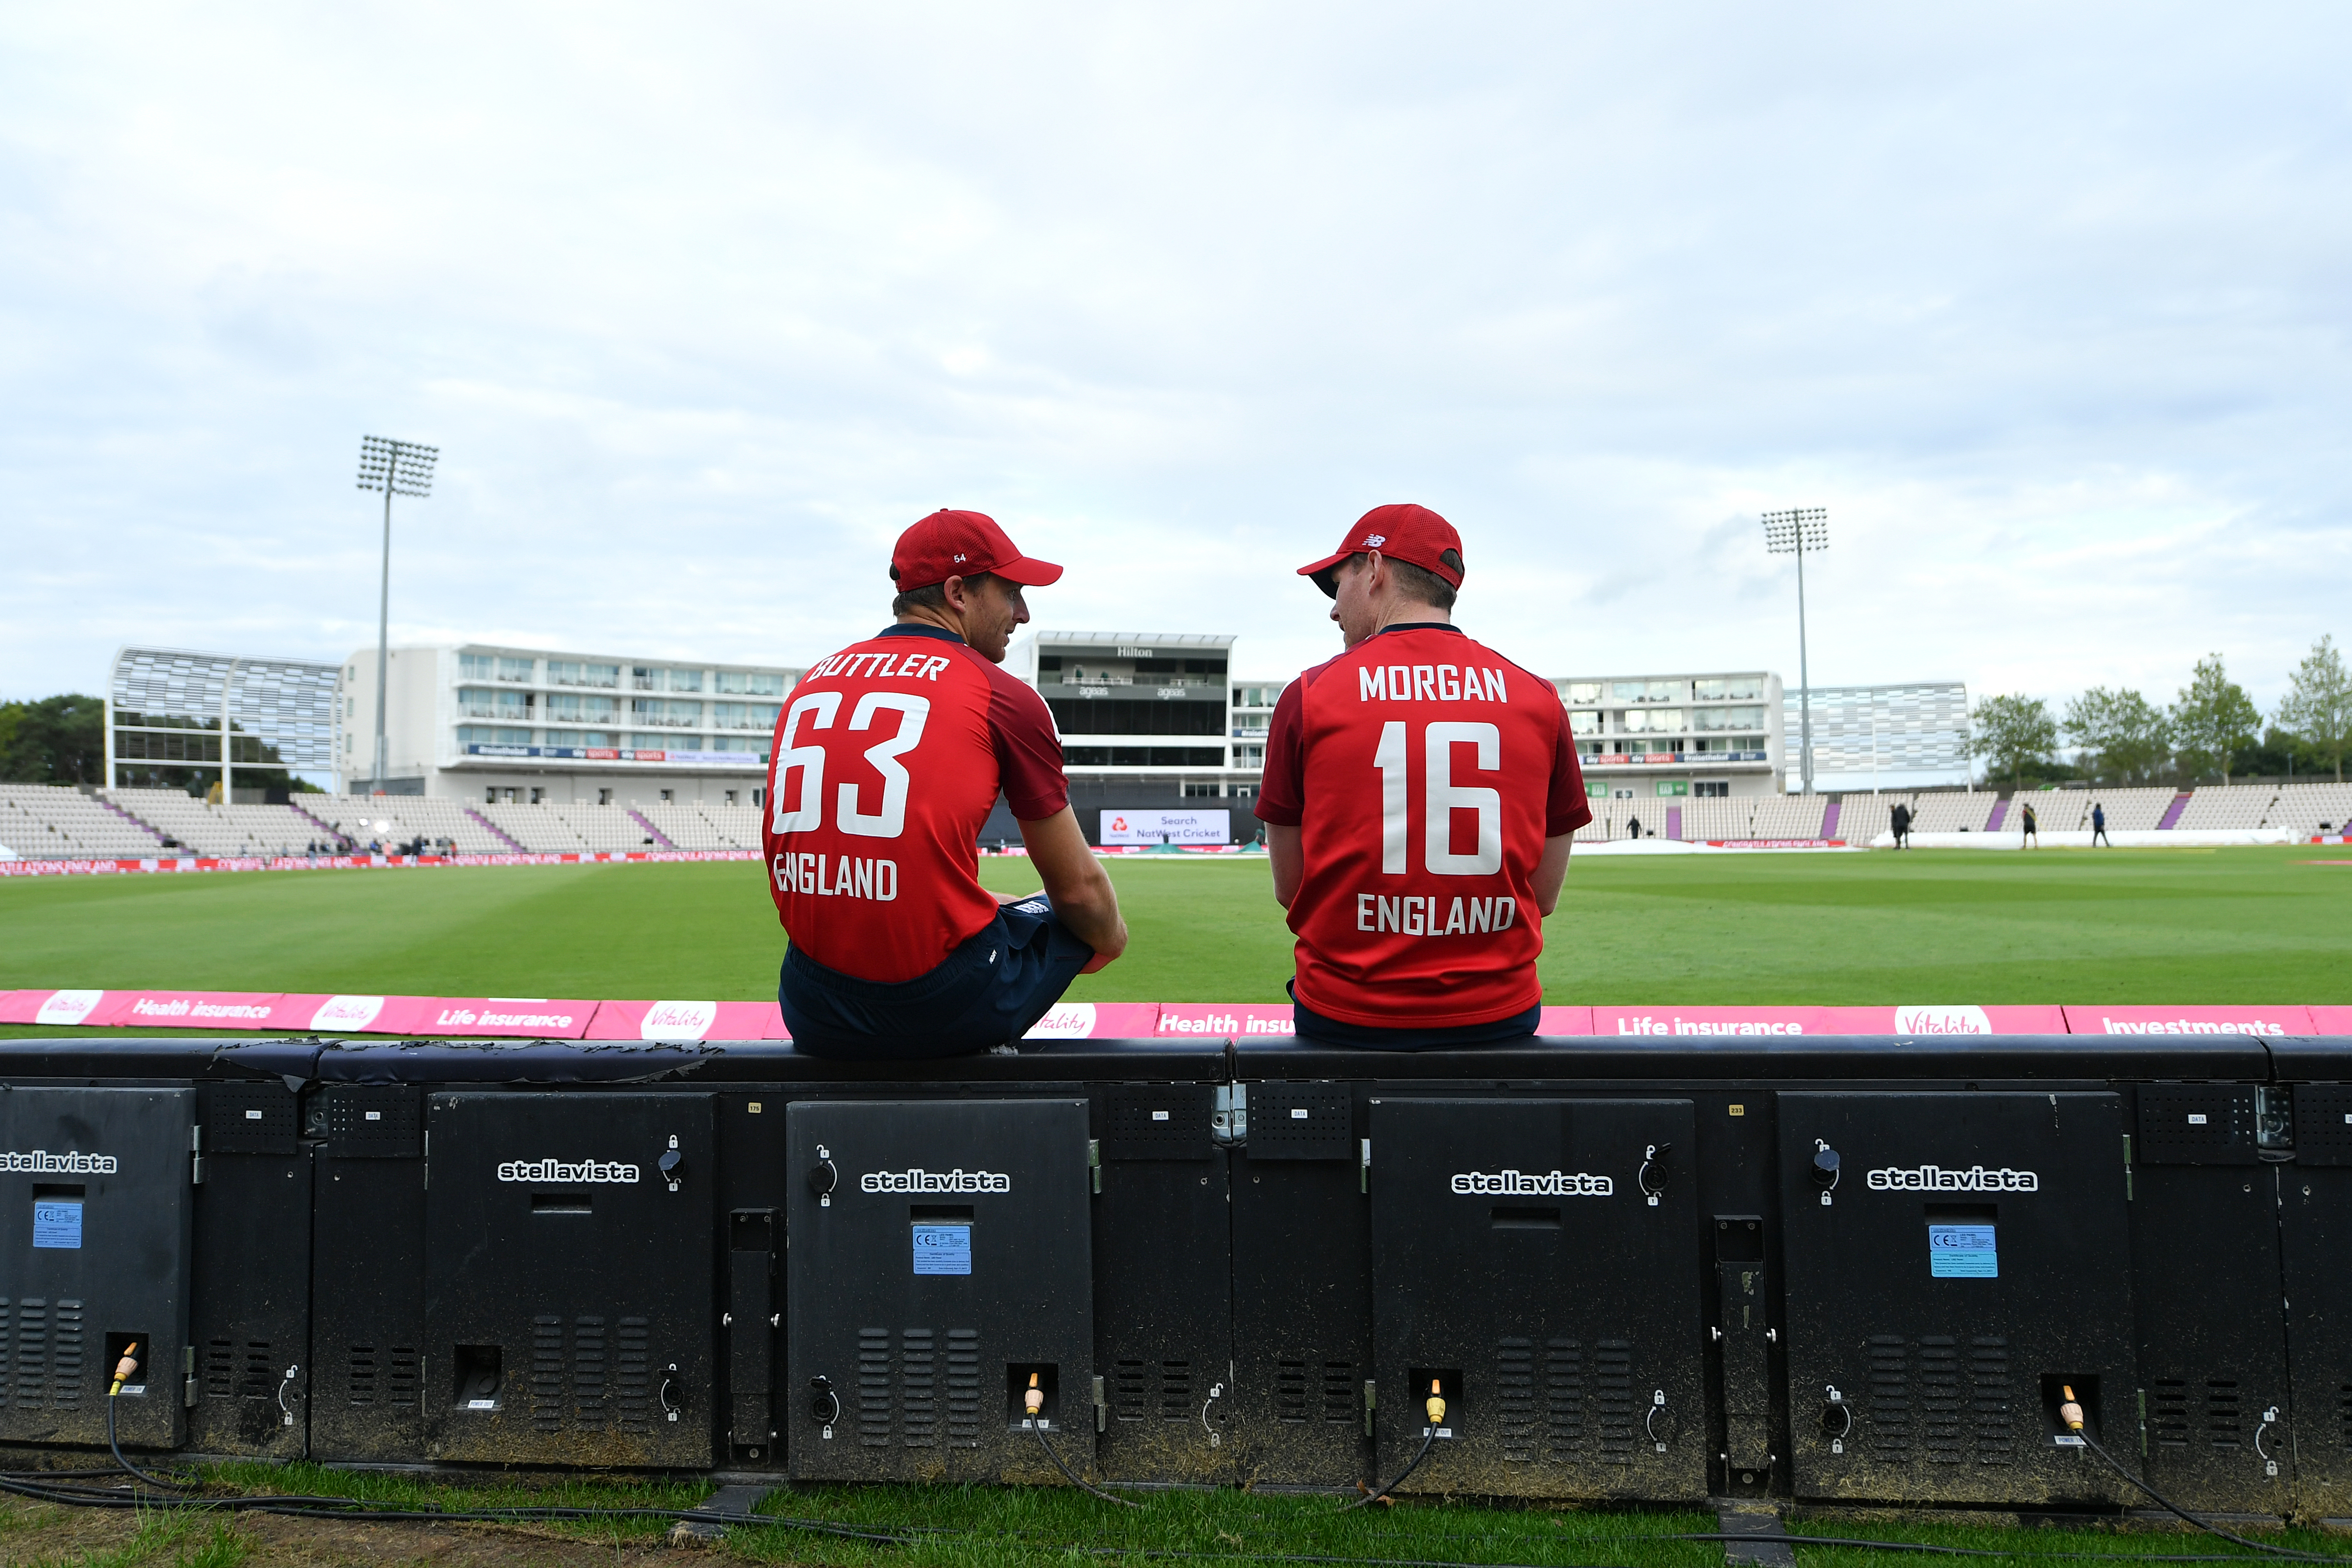 SOUTHAMPTON, ENGLAND - SEPTEMBER 06: Jos Buttler and Eoin Morgan of England talk following their victory during the second Vitality International Twenty20 match between England and Australia at The Ageas Bowl on September 06, 2020 in Southampton, England. (Photo by Dan Mullan/Getty Images)